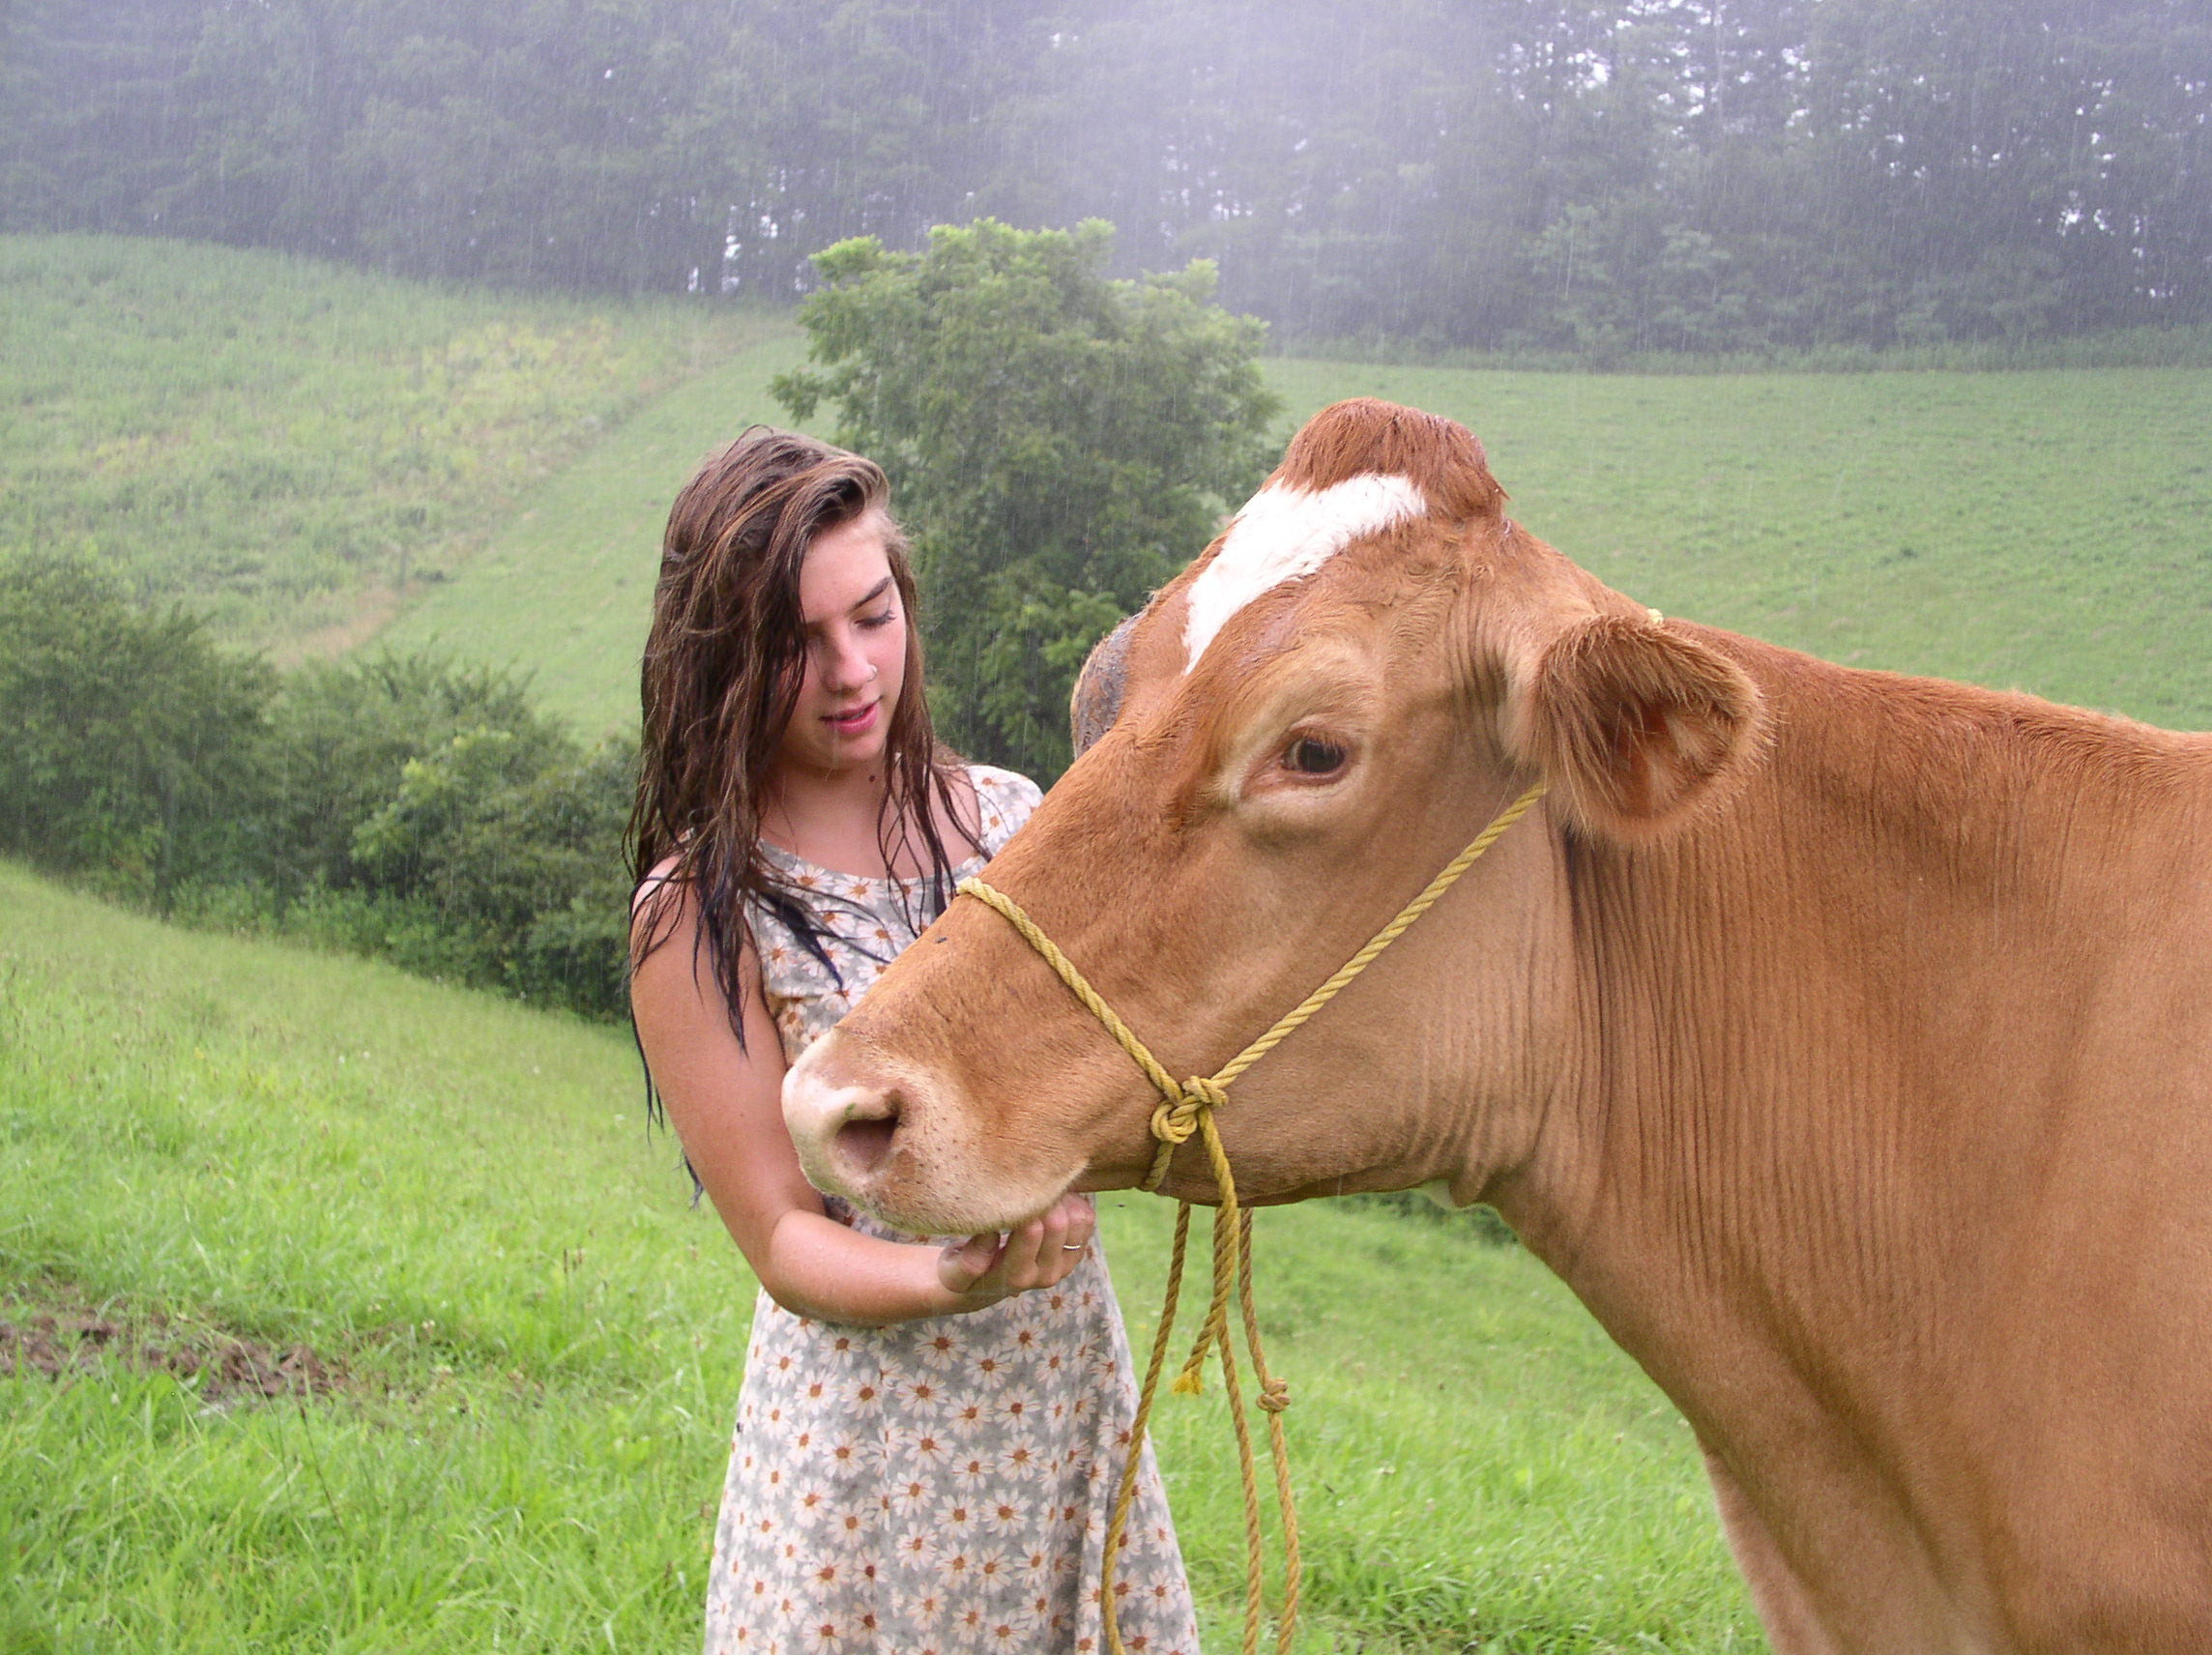 Lady with cows photo